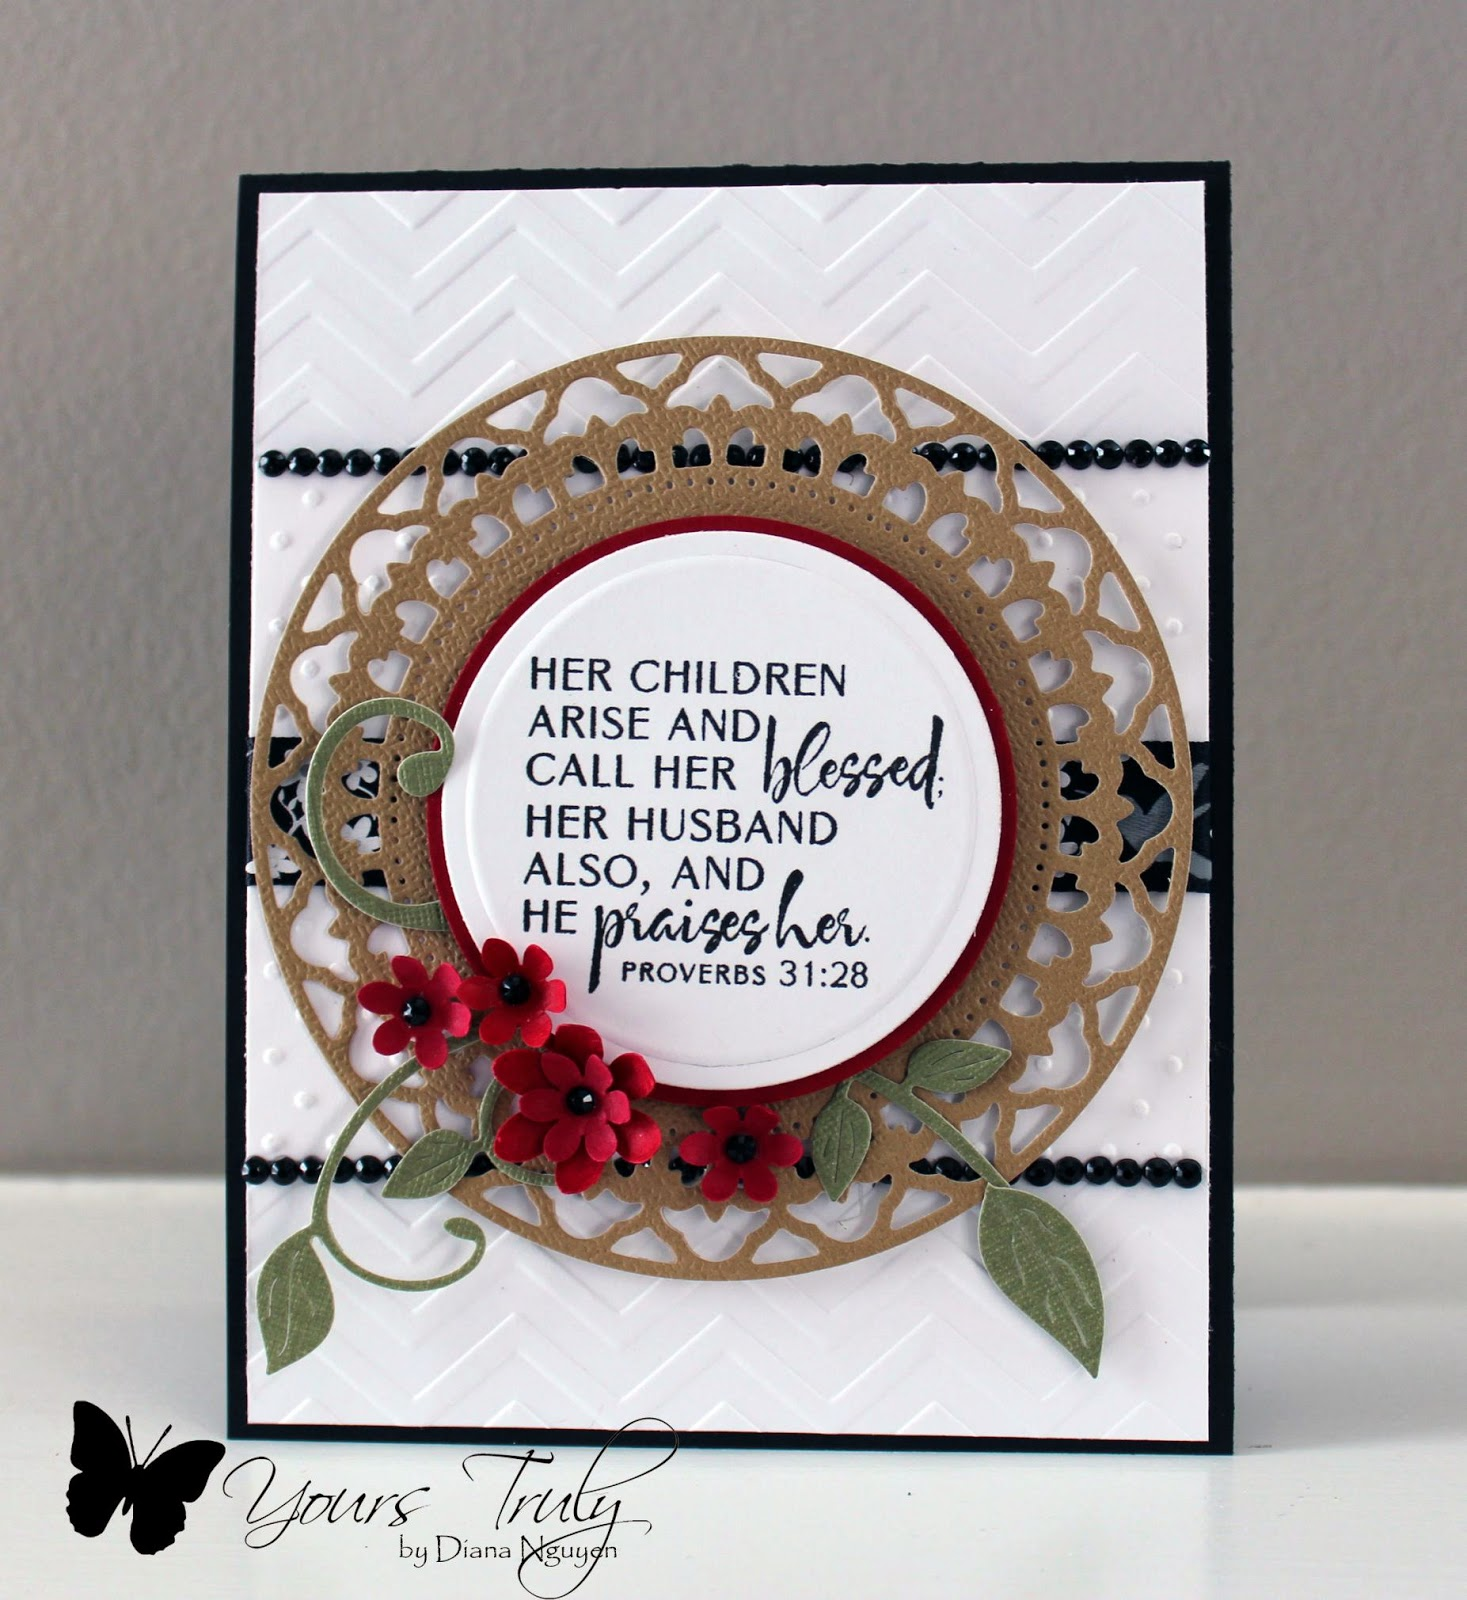 Diana Nguyen, Verve, Mother, handmade card